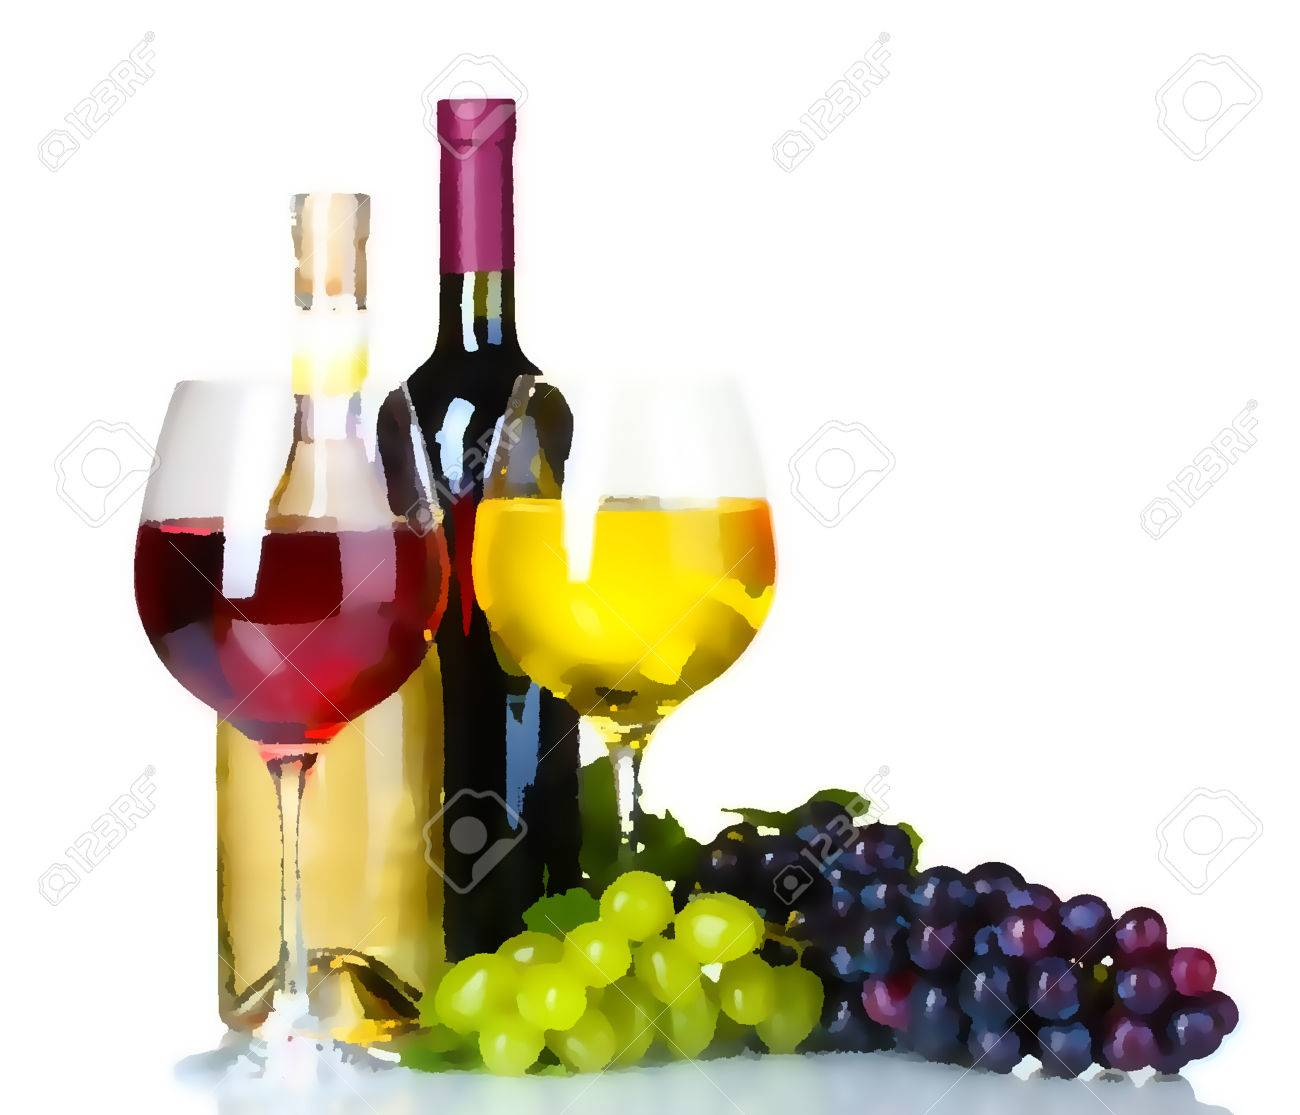 1300x1115 Hand Drawn Watercolor Illustration Of The Wine Bottle, Grape